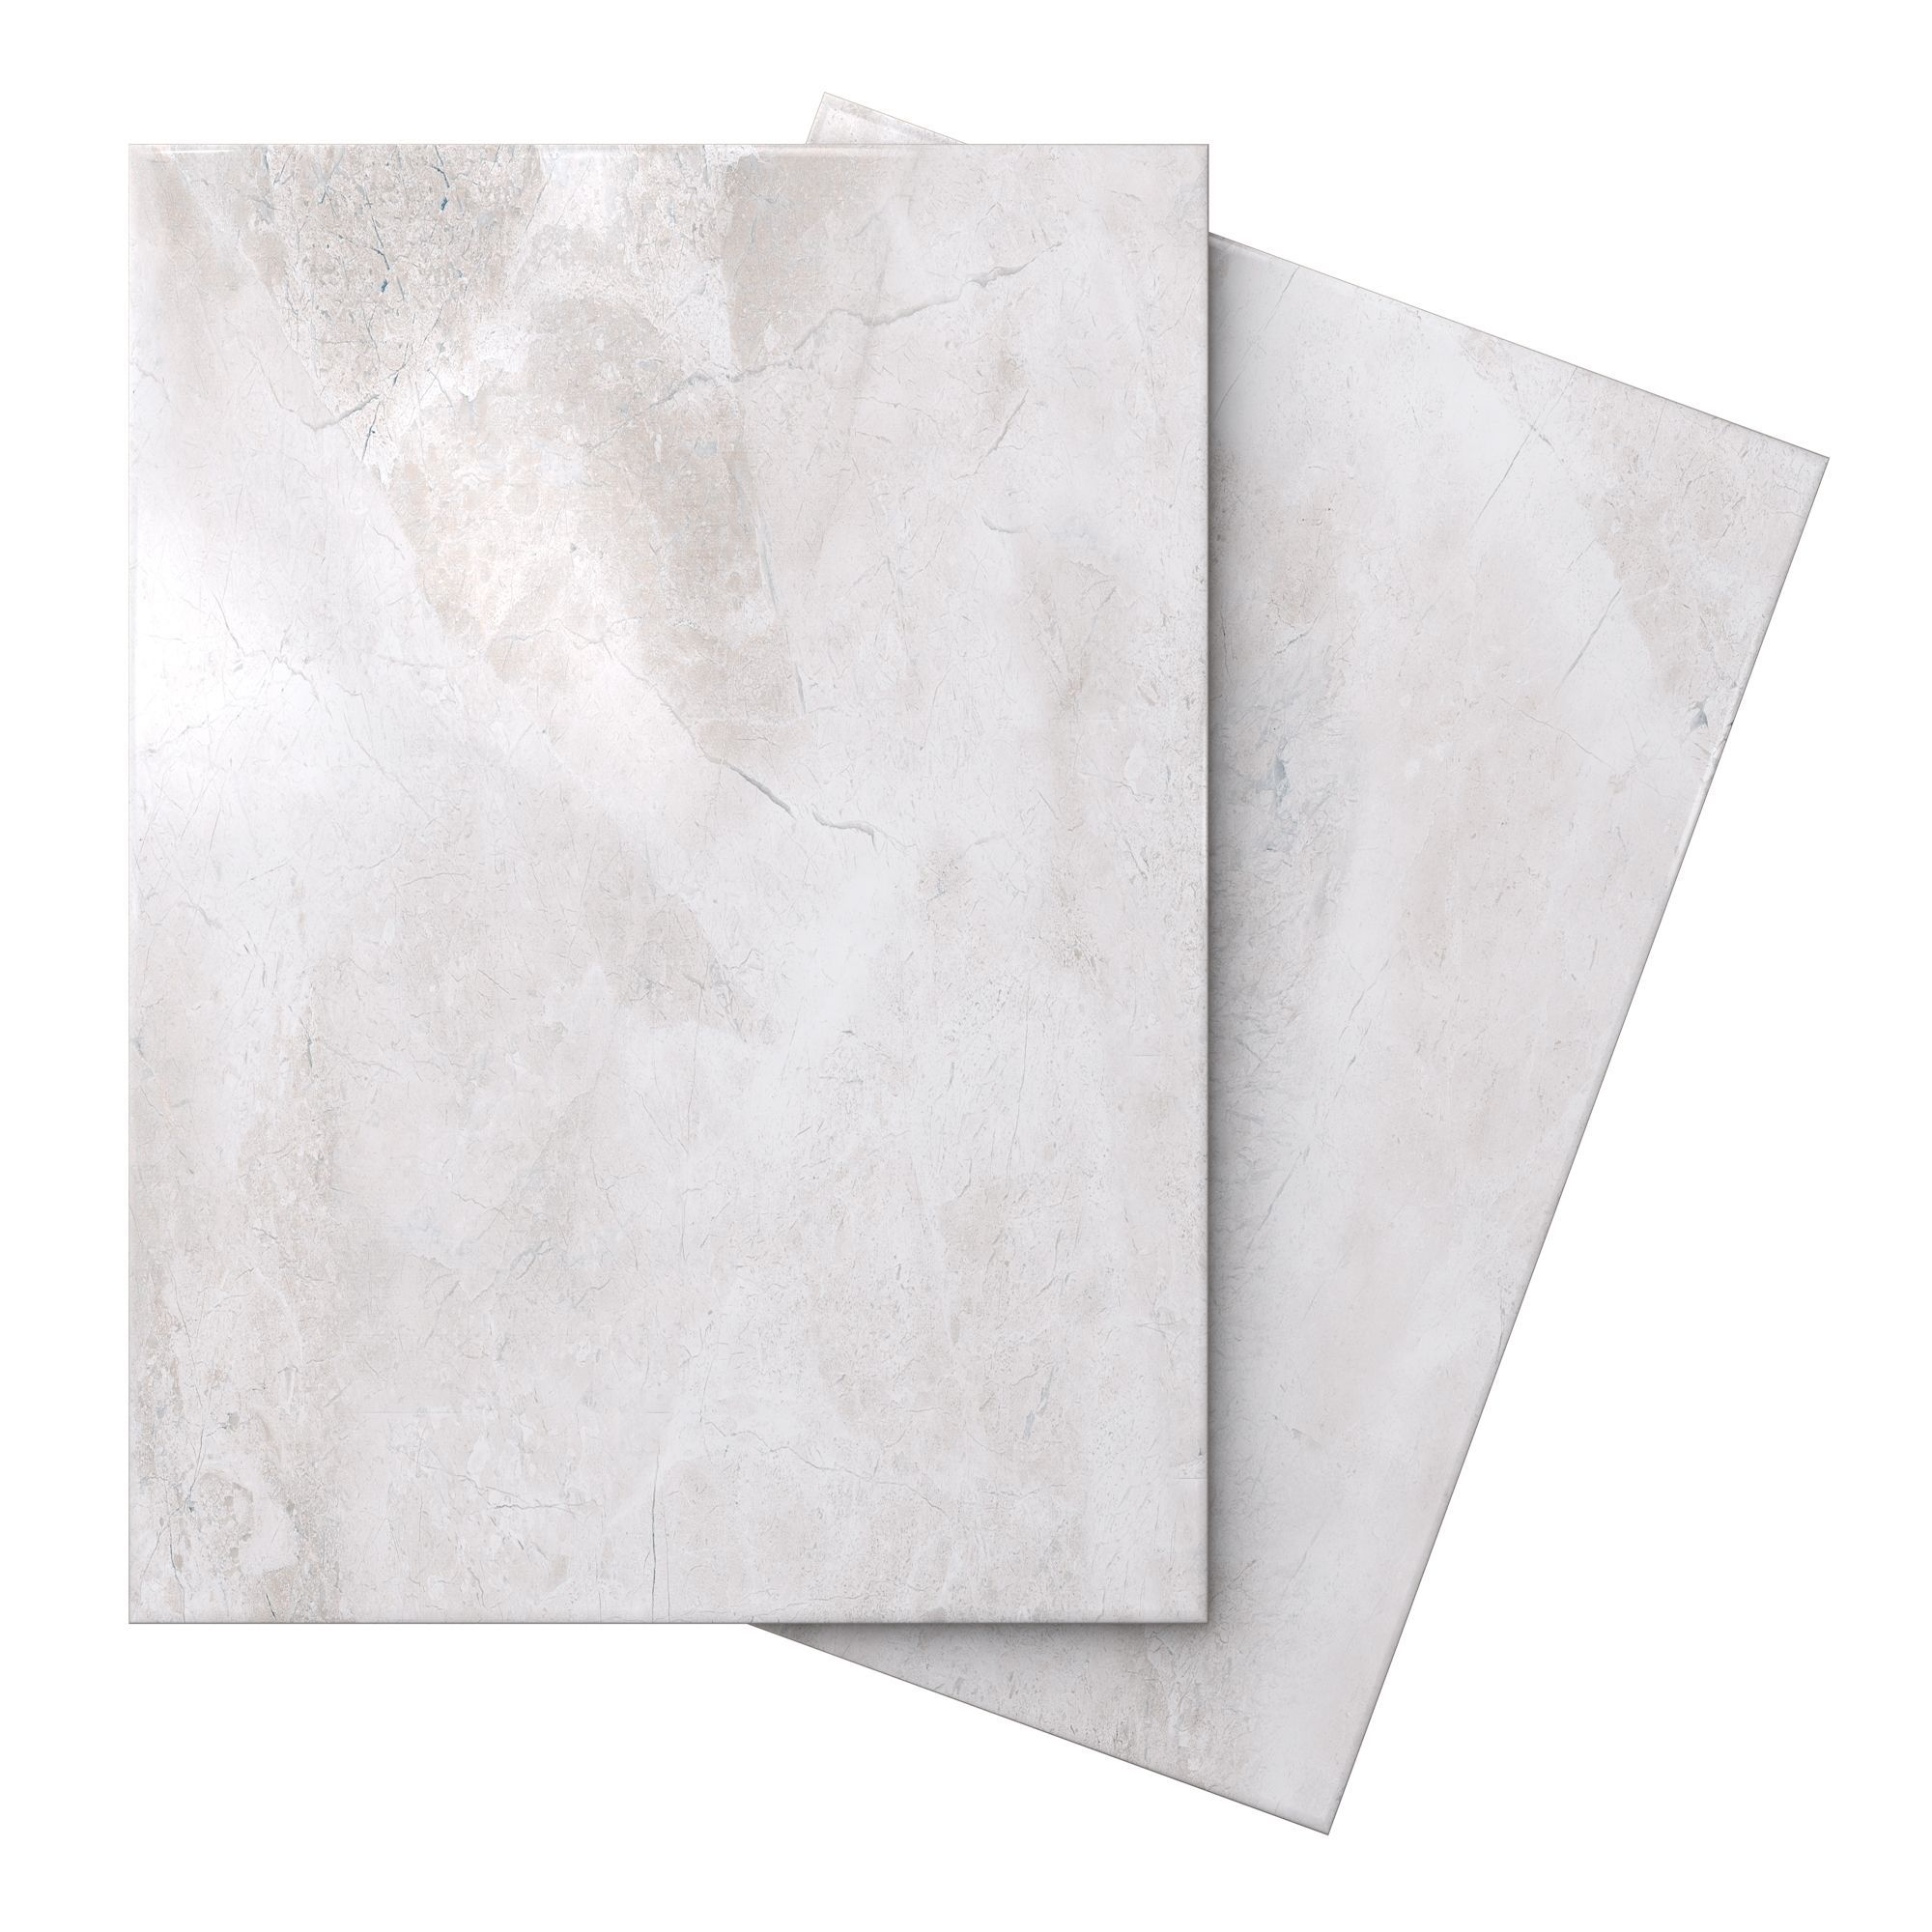 Illusion White Marble Effect Ceramic Wall Amp Floor Tile